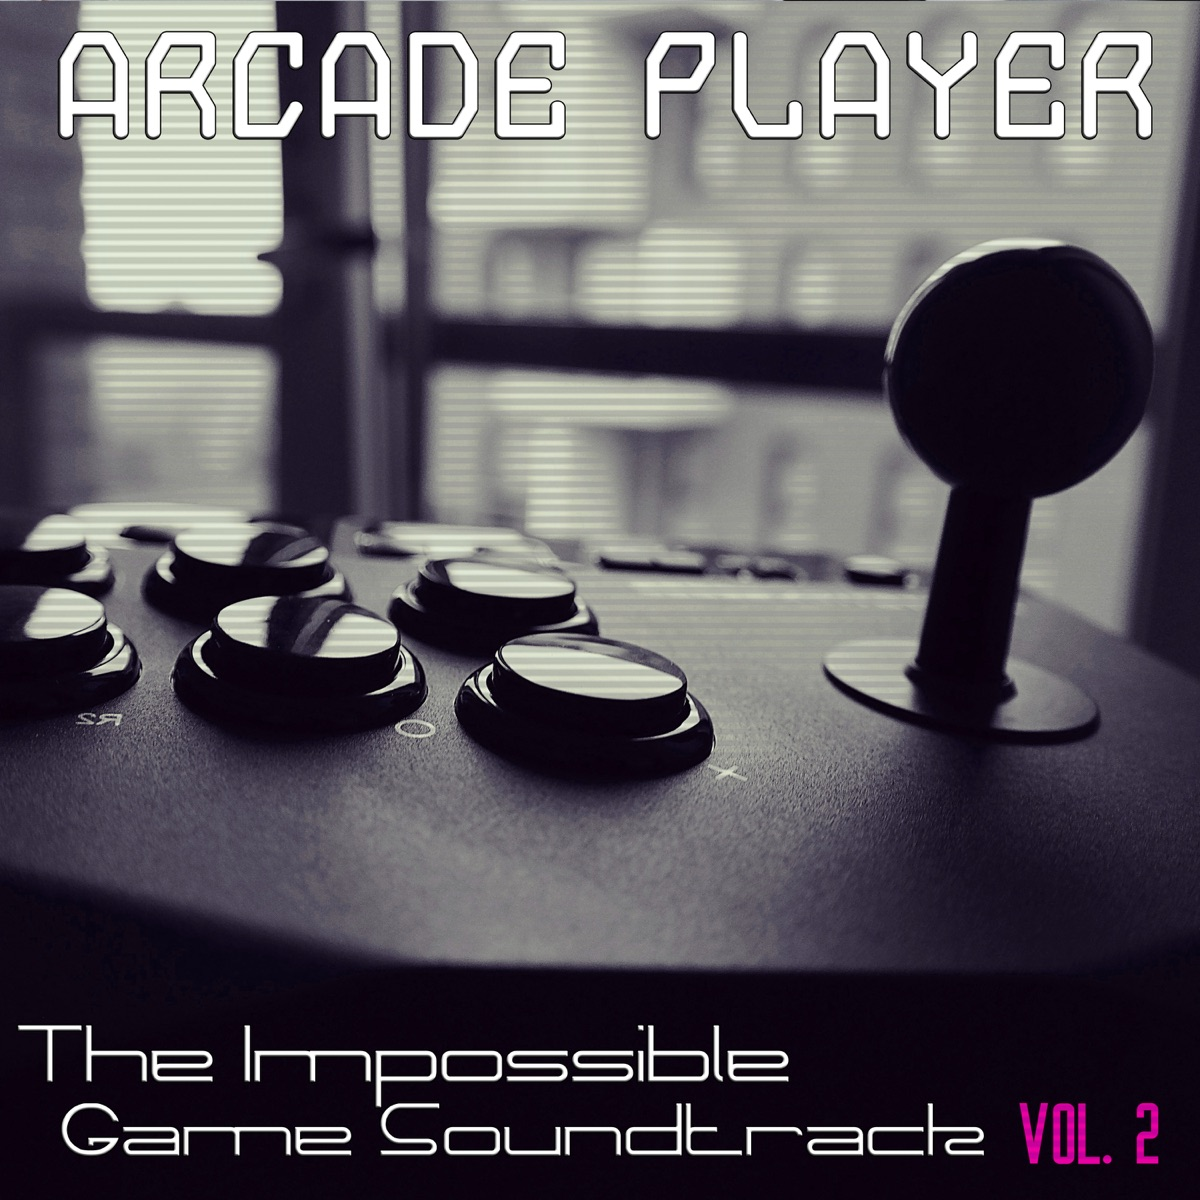 The Impossible Game Soundtrack Vol 2 Arcade Player CD cover